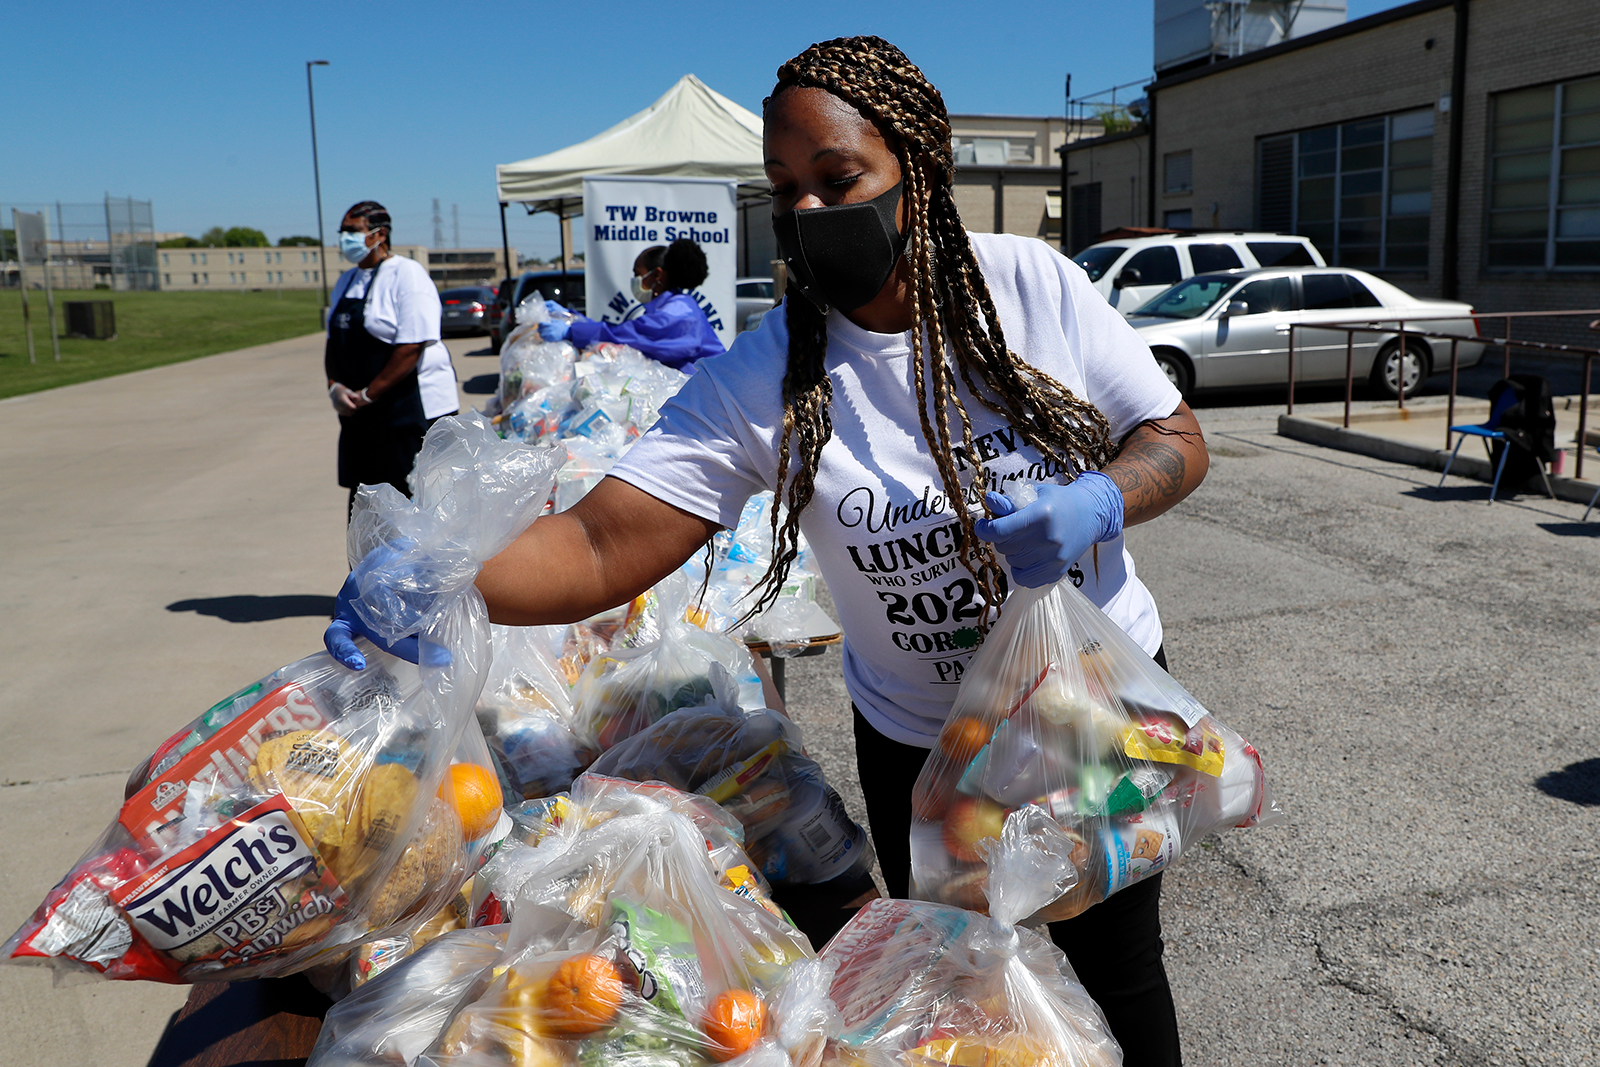 T.W. Browne Middle School food service employee Keke LaFayette, prepares to distribute food to a Dallas Independent School District family in Dallas, on April 16.